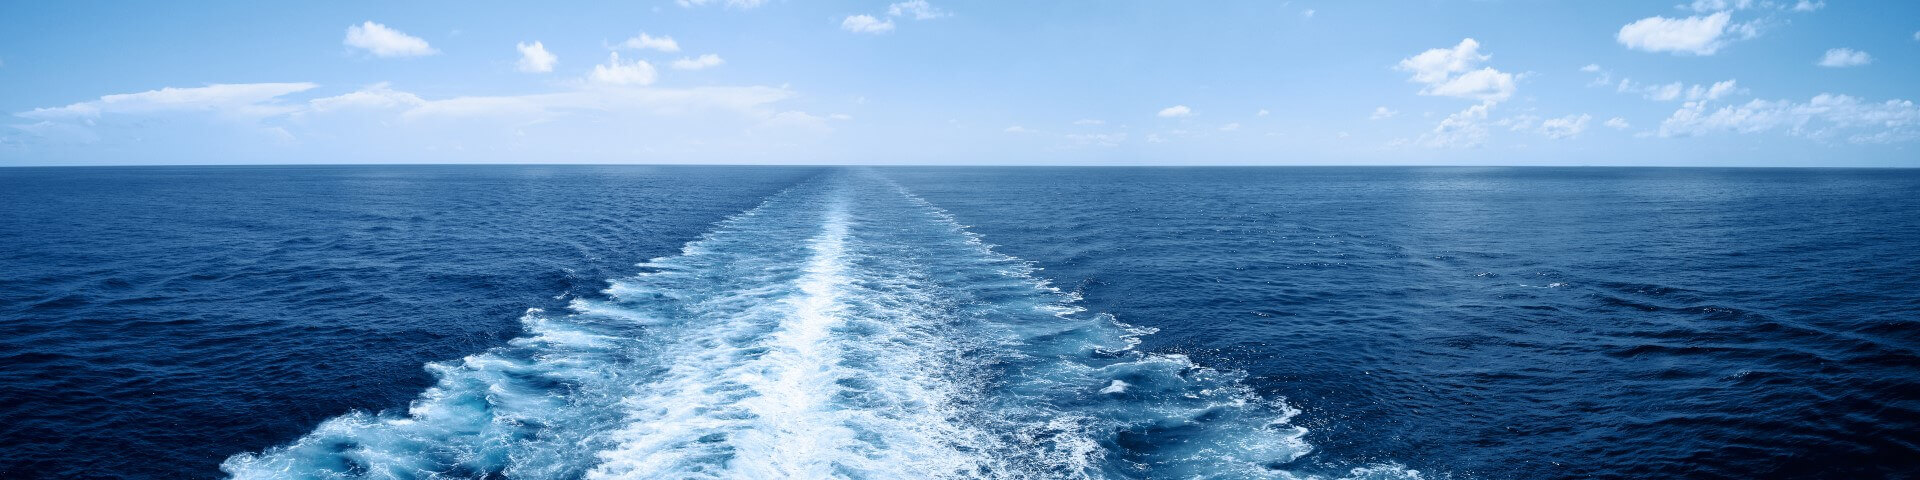 Sea with waves caused by a ship